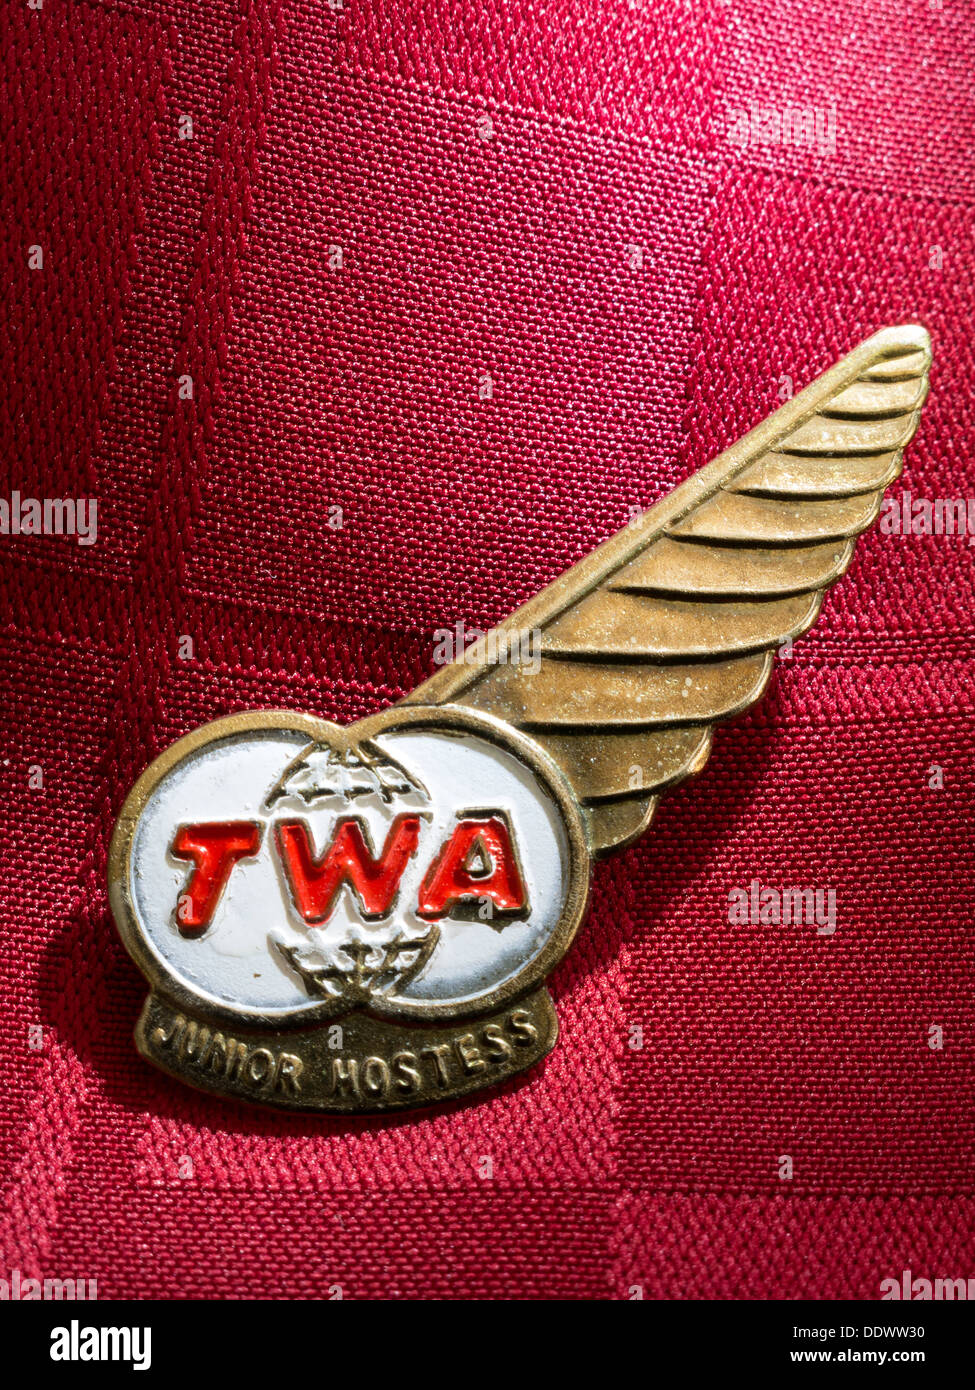 1960s Twa Airline Junior Hostess Wings Stock Photo 60190116 Alamy